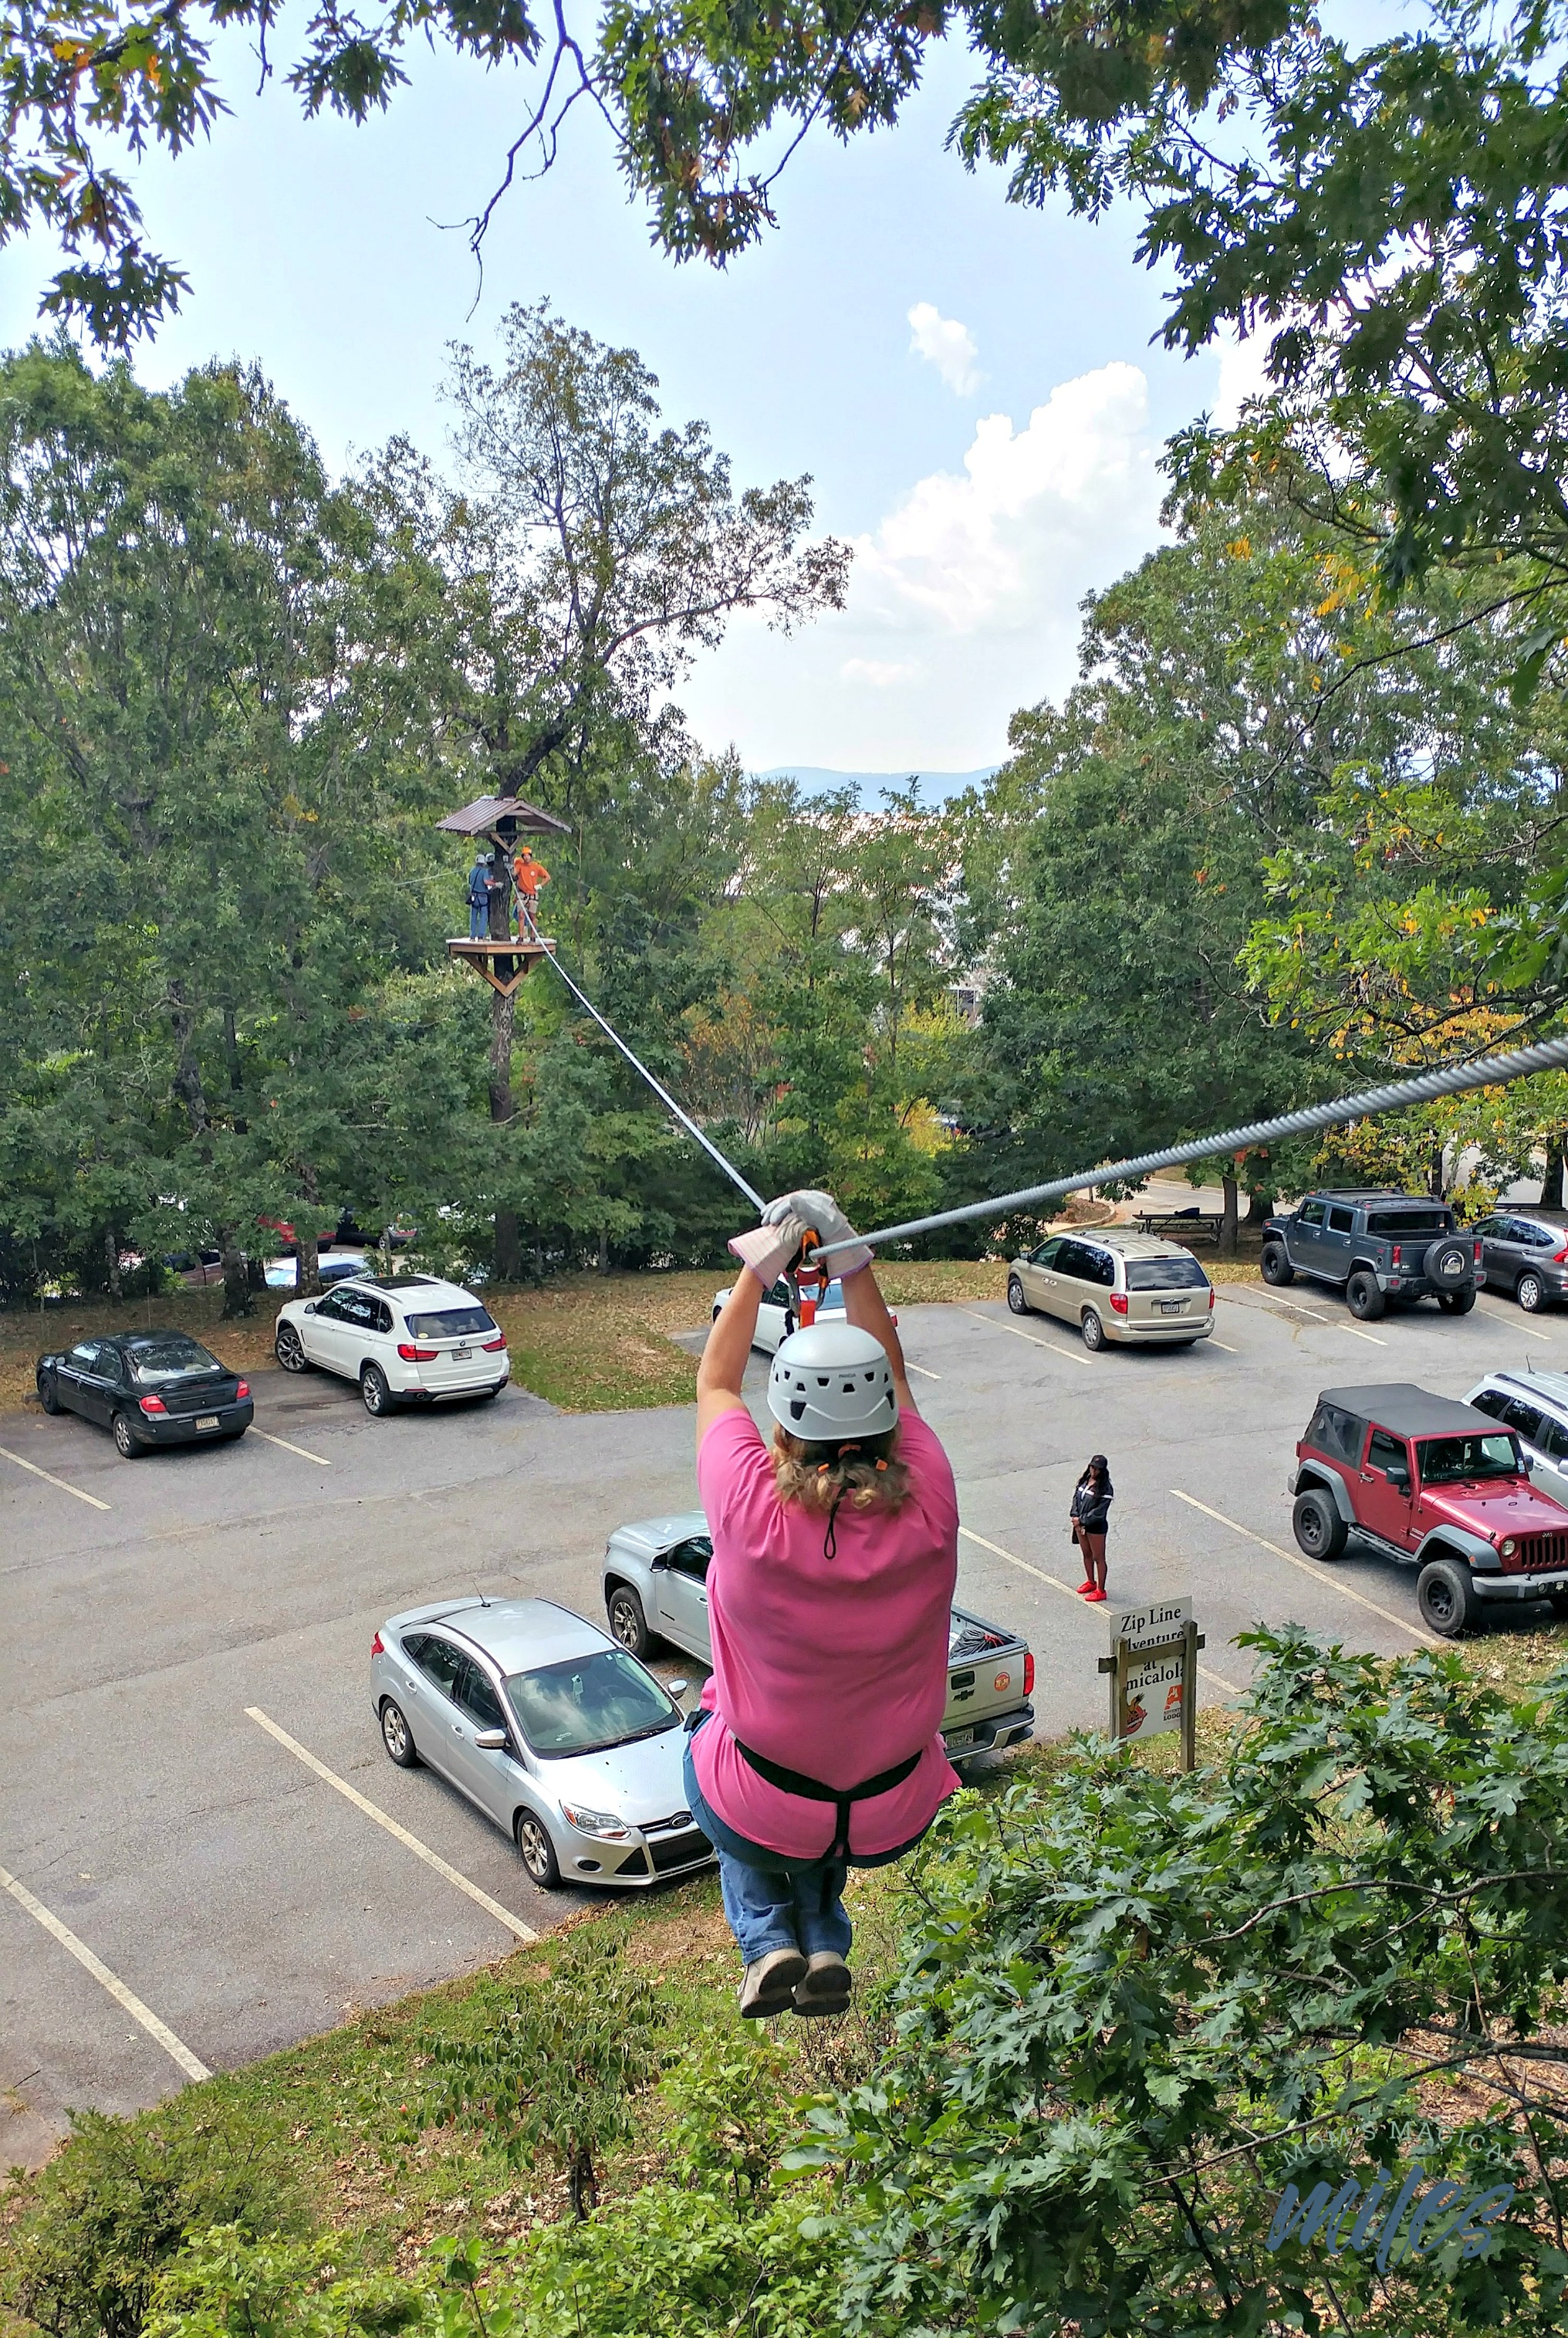 The Amicalola Falls State Park Zipline experience starts you out easy on Level 1.